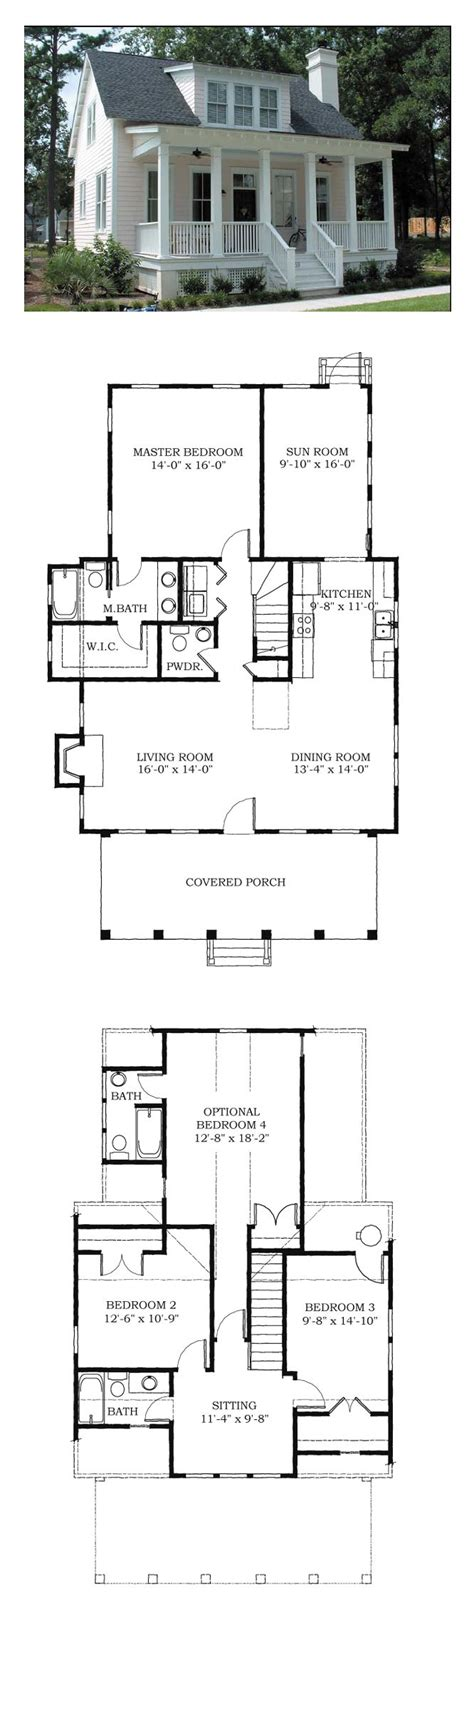 4 Bed Bungalow House Plans by Modern Small House Plans Wolofi